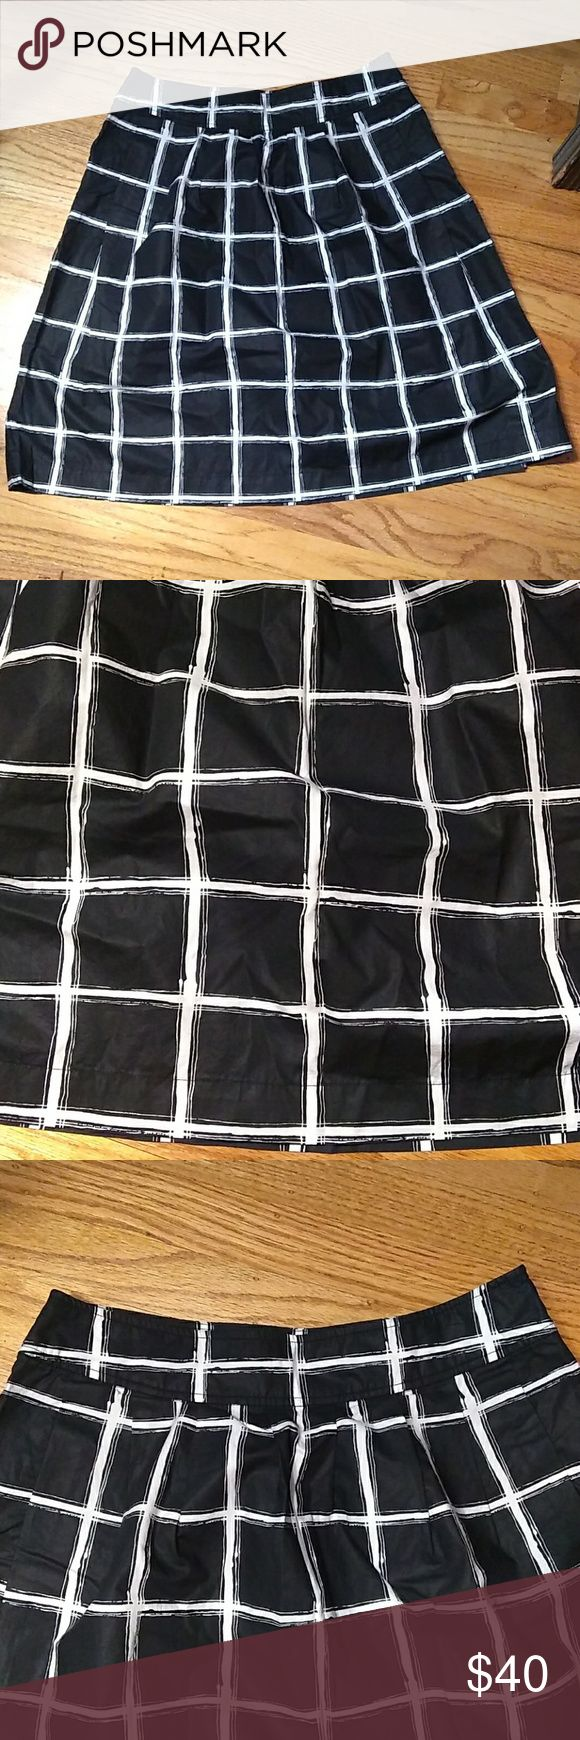 Michael Kors A line skirt Black with white window pane pattern. Zipper on side. 100% cotton. Pockets, but seal has never been broken. Excellent condition. Approx measurements: across waist, 15 in; length, 22.25 in. Michael Kors Skirts A-Line or Full